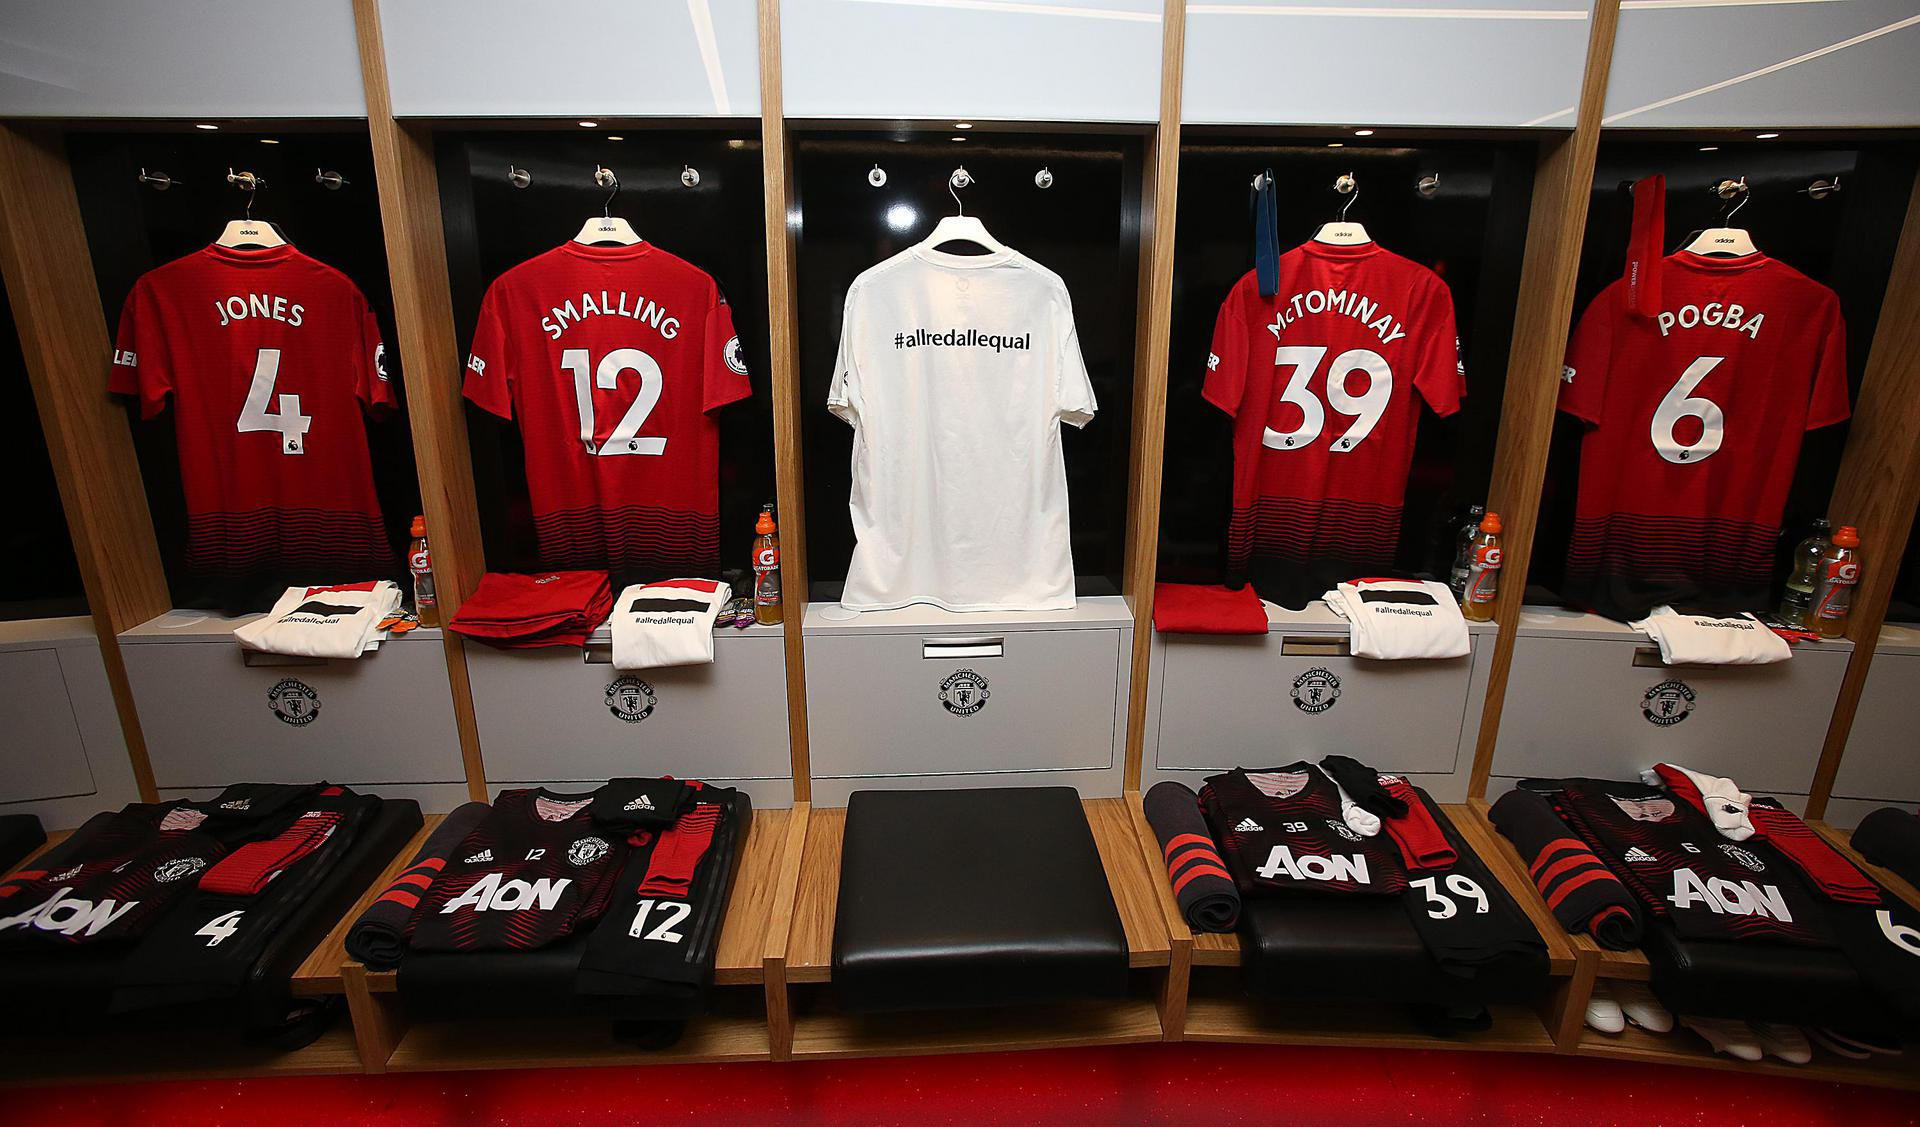 Manchester United shirts in the home dressing room at Old Trafford